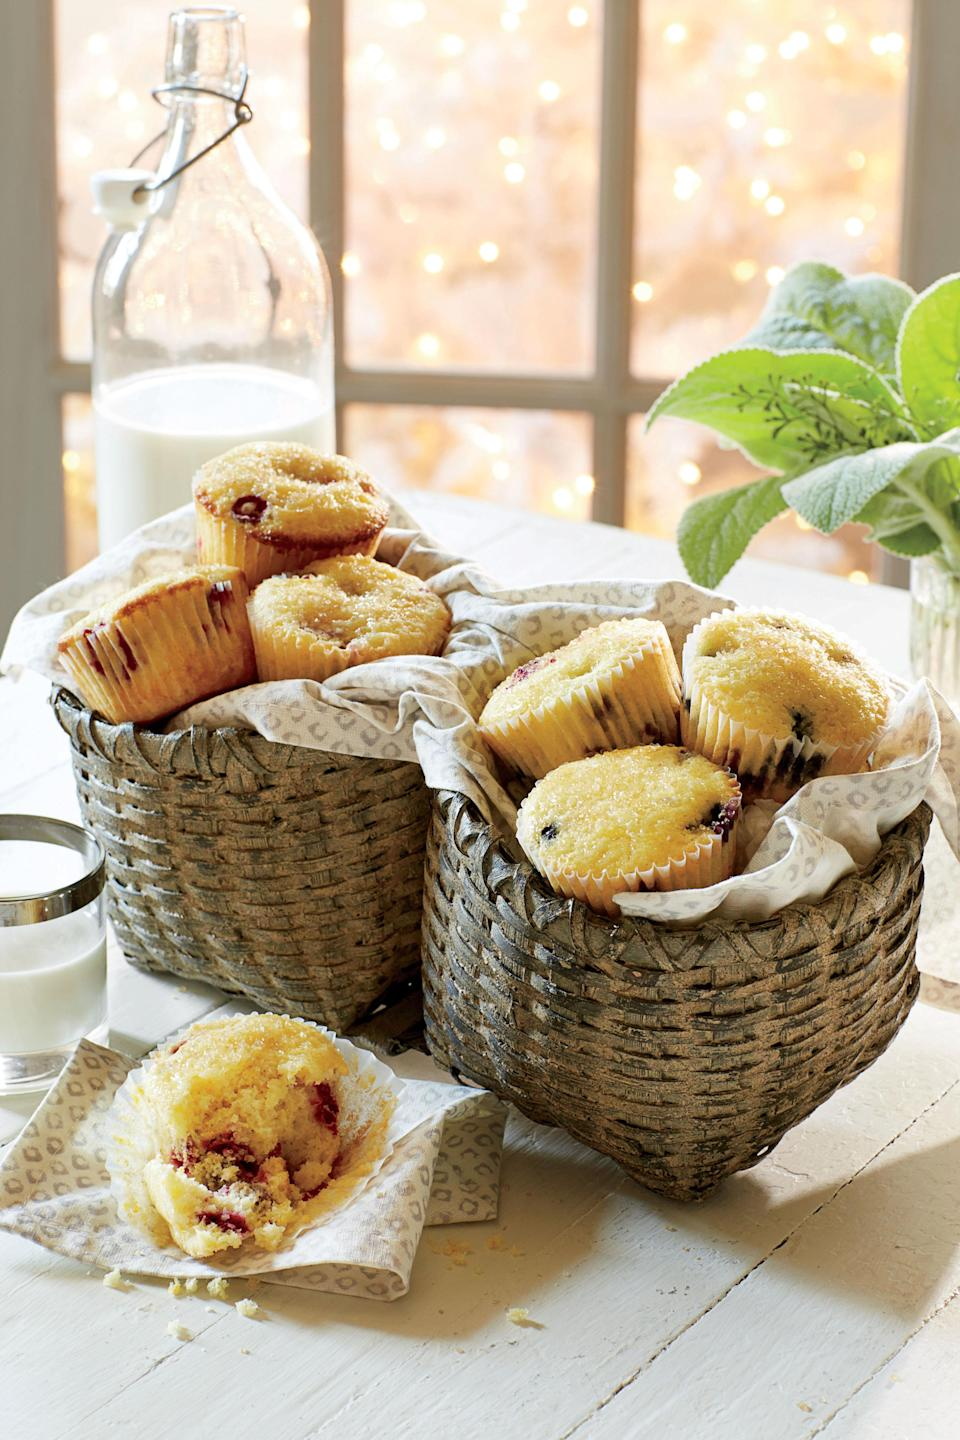 """<p><strong>Recipe: <a href=""""http://www.myrecipes.com/recipe/cranberry-orange-muffins-4"""" rel=""""nofollow noopener"""" target=""""_blank"""" data-ylk=""""slk:Cranberry-Orange Muffins"""" class=""""link rapid-noclick-resp"""">Cranberry-Orange Muffins</a></strong></p> <p>Sprinkle the tops of the glazed muffins with coarse sugar to add texture and a little sparkle.</p>"""